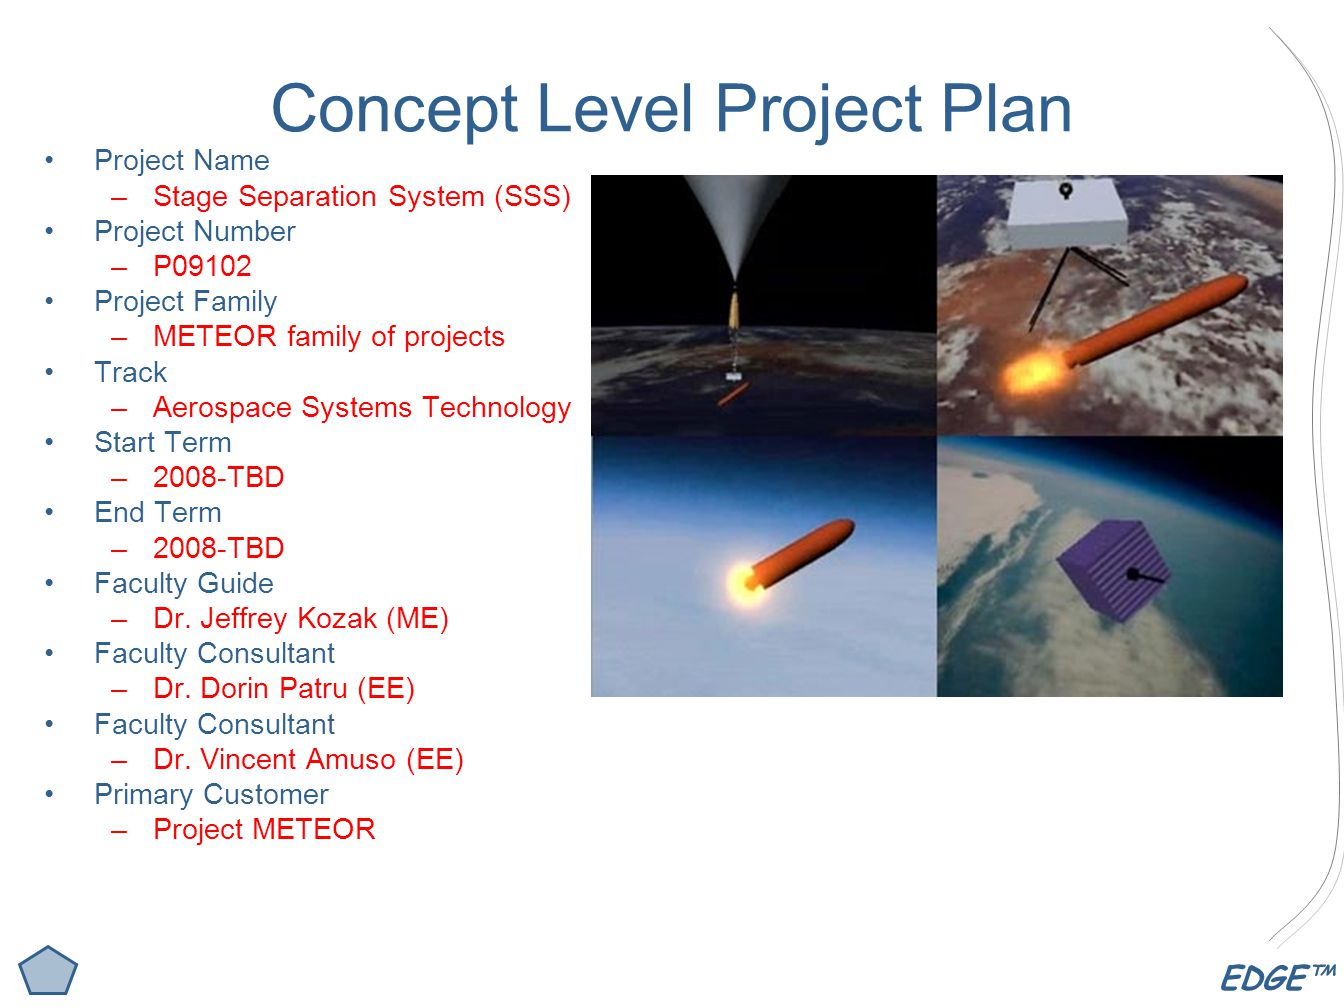 EDGE™ Concept Level Project Plan Project Name –Stage Separation System (SSS) Project Number –P09102 Project Family –METEOR family of projects Track –Aerospace Systems Technology Start Term –2008-TBD End Term –2008-TBD Faculty Guide –Dr.